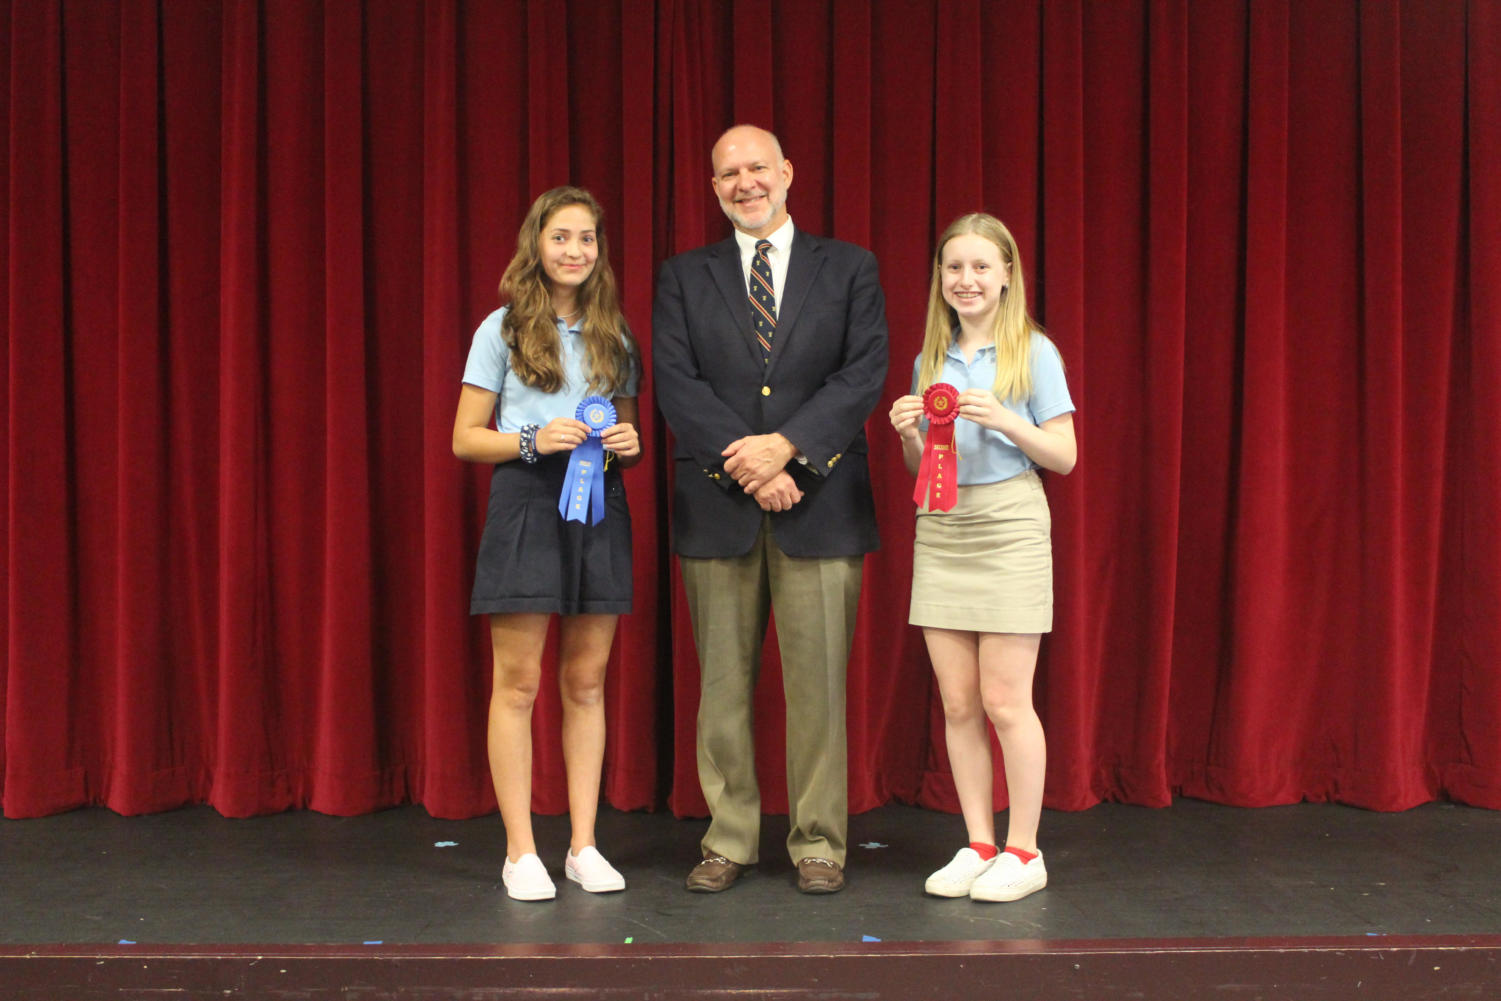 Head of Middle School Mr. Charles Hagy poses with spelling bee champion Emilie Dubiel (left) and runner-up Joie Rodin.